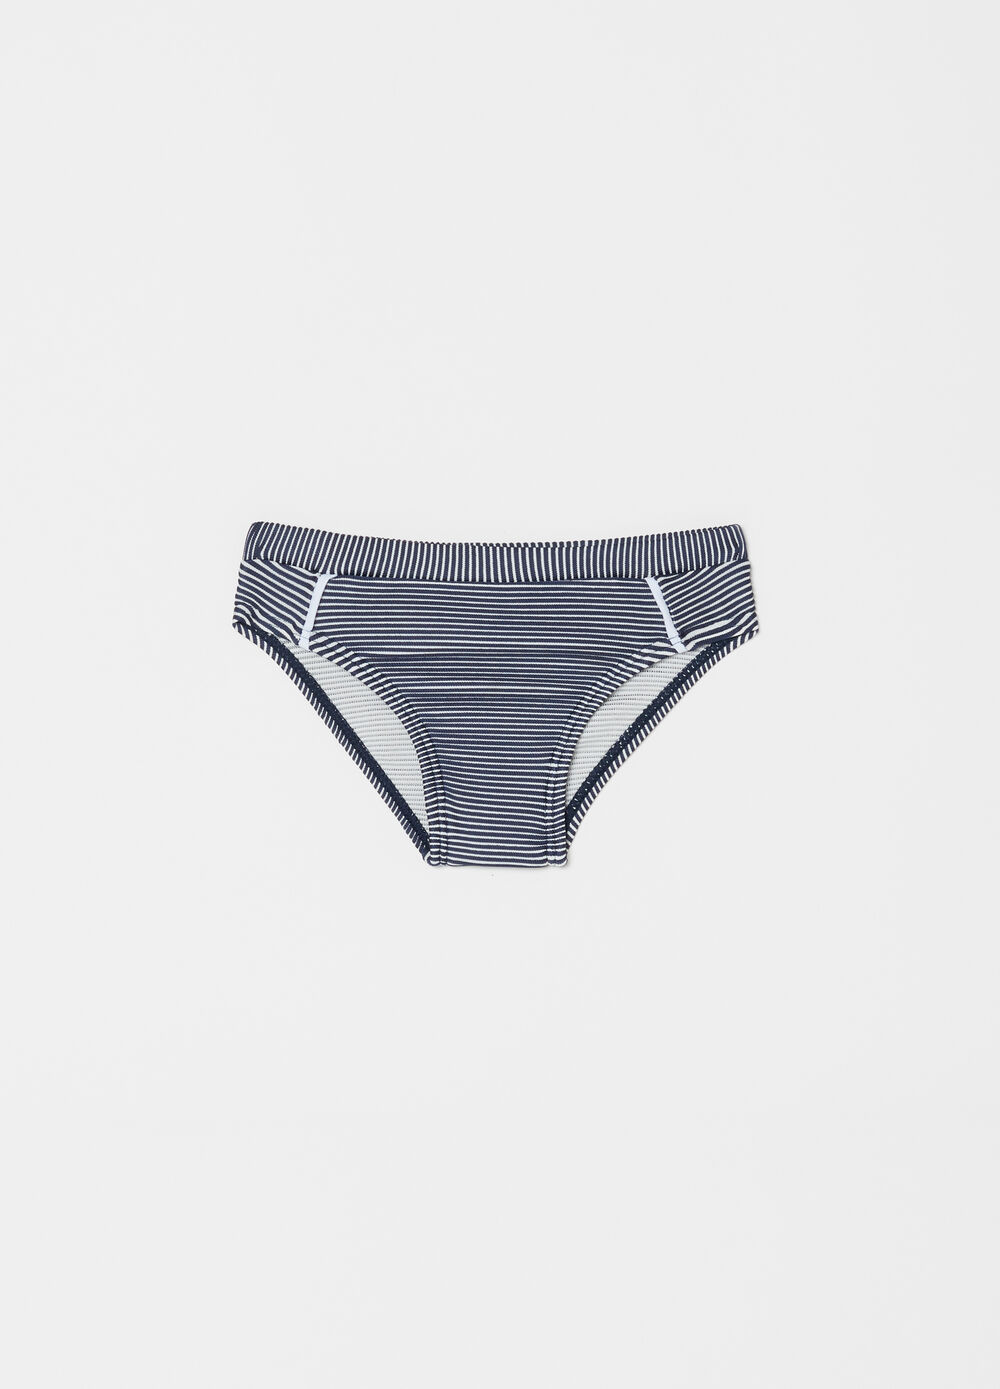 Stretch bikini bottoms with striped pattern